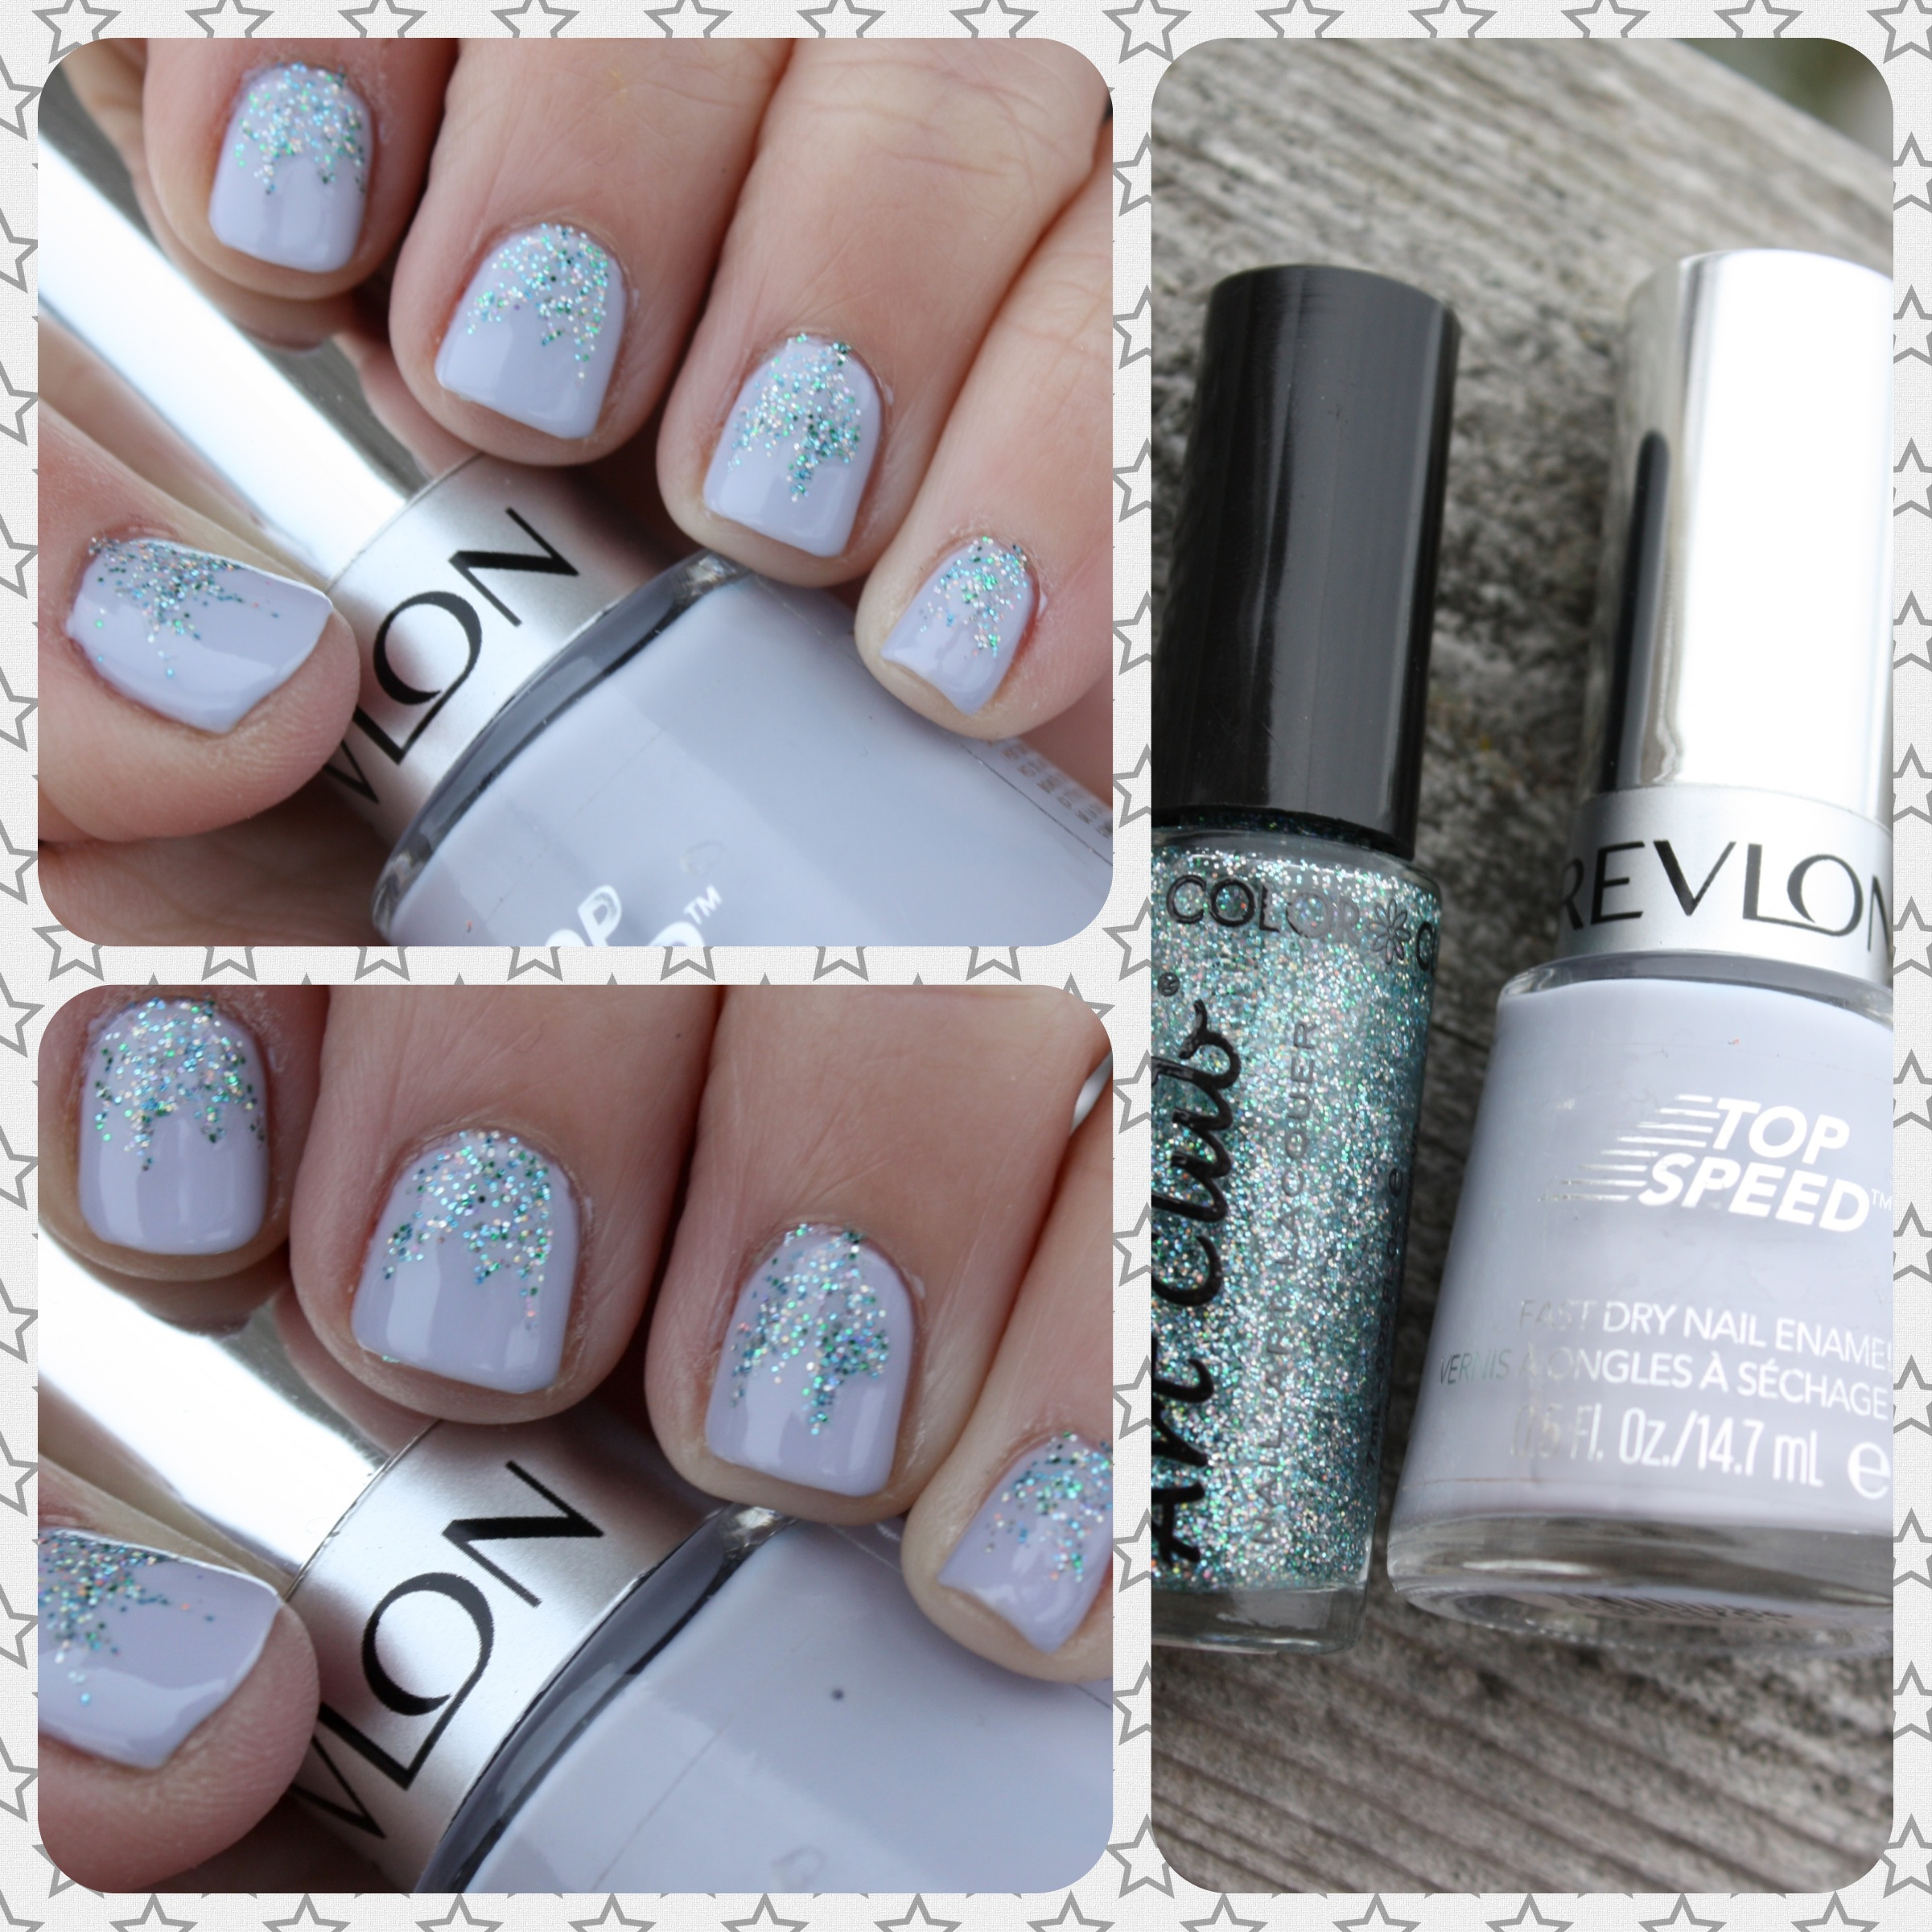 Sparkly Manicure with Revlon Cloud and Color Club Blue Hologram ...